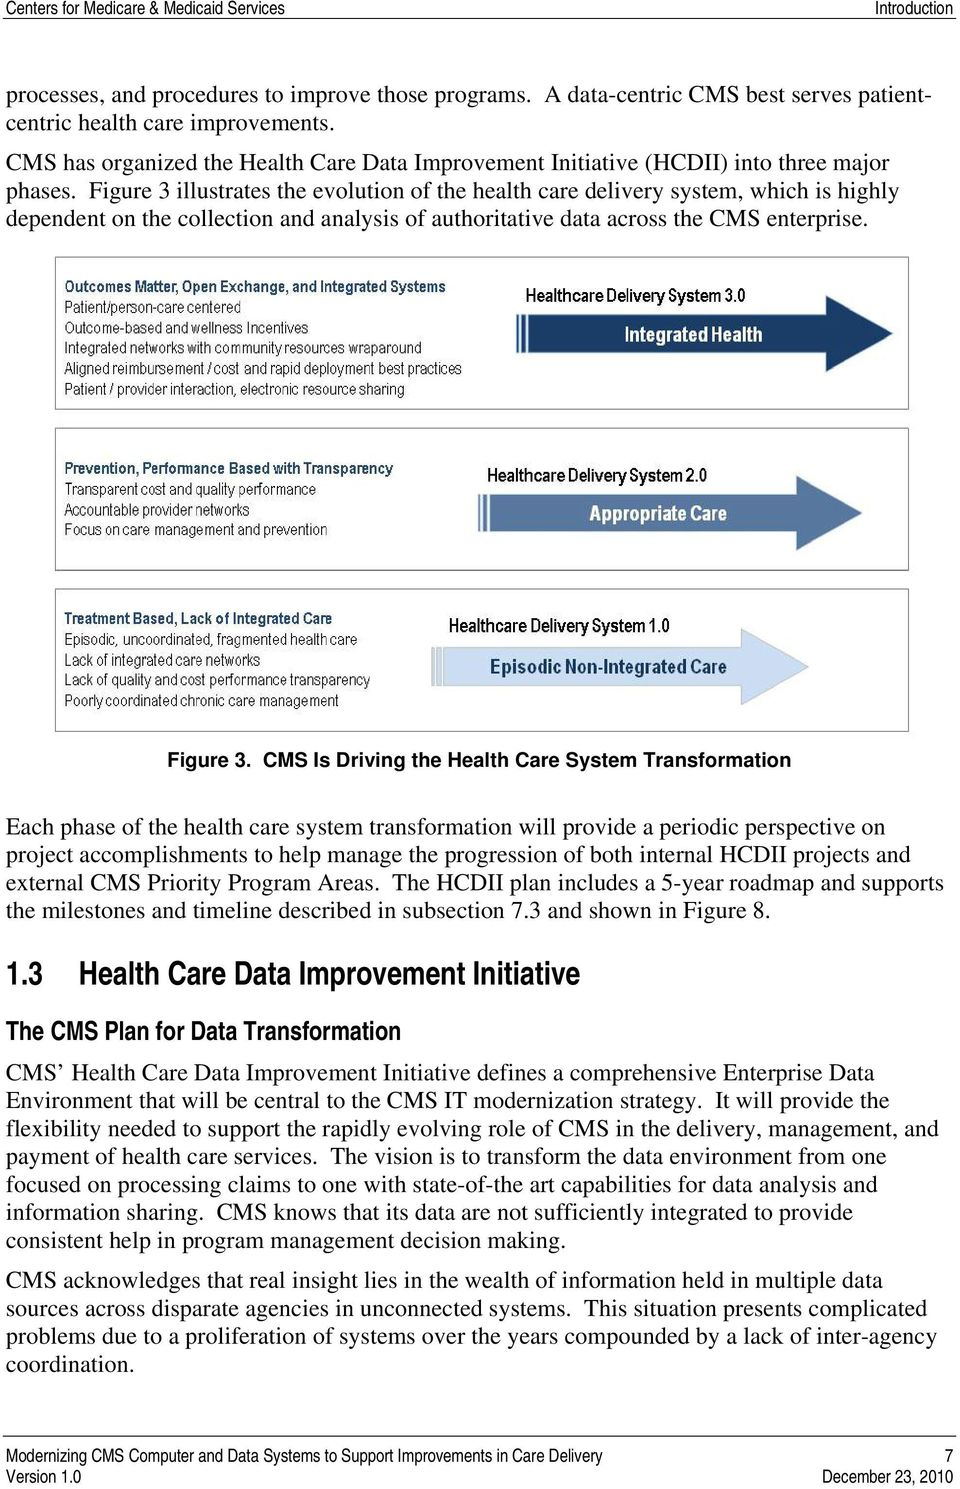 Figure 3 illustrates the evolution of the health care delivery system, which is highly dependent on the collection and analysis of authoritative data across the CMS enterprise. Figure 3.